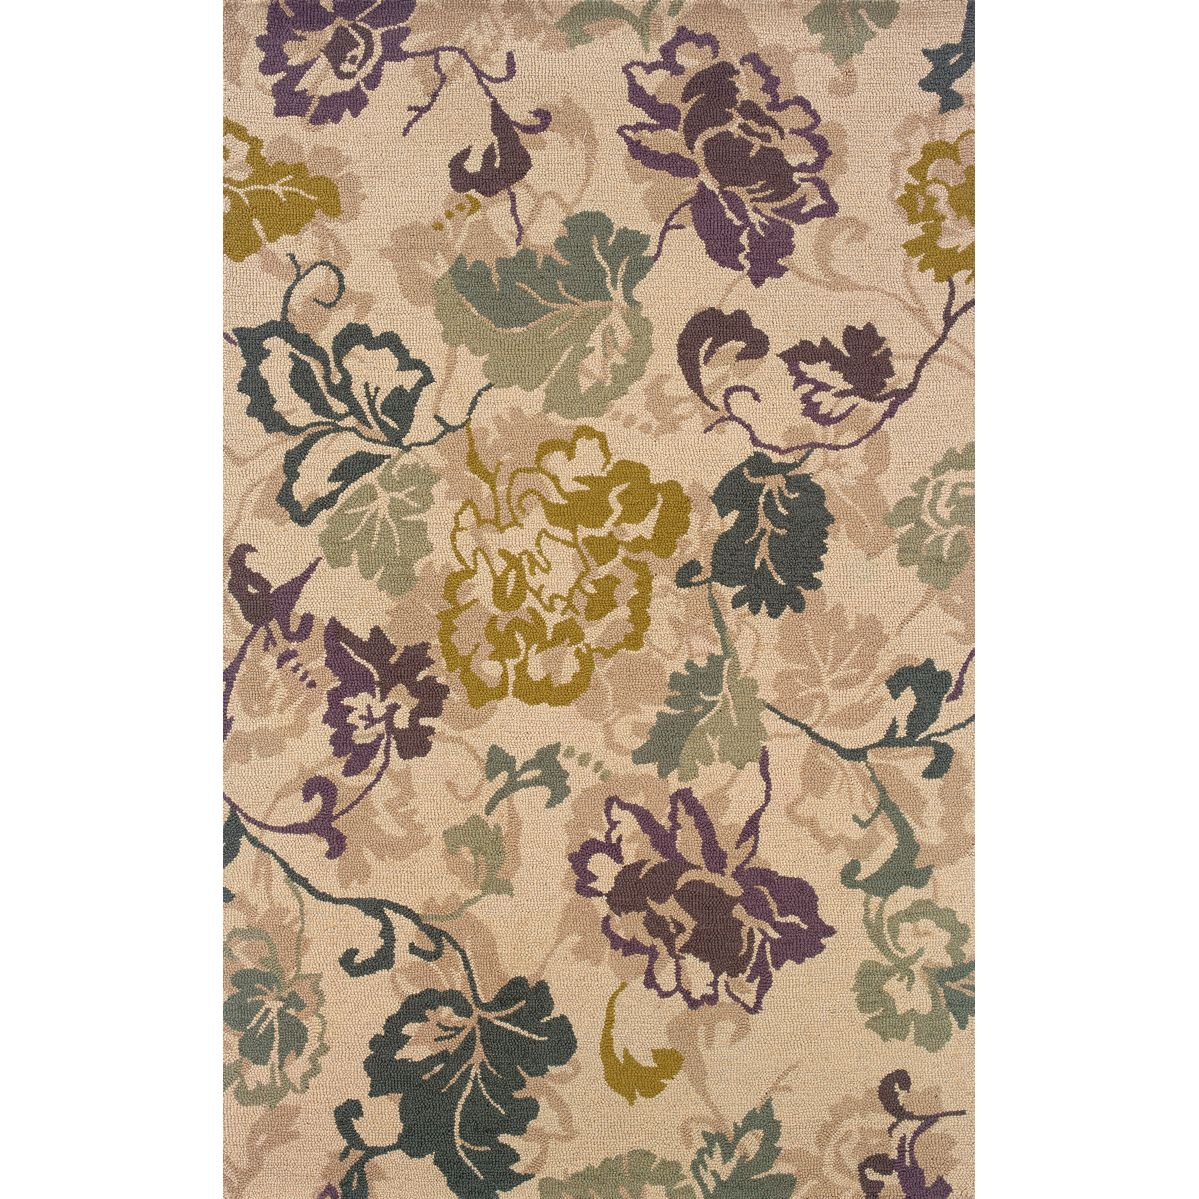 This Beautiful Hand Tufted Area Rug Features A Large Scale